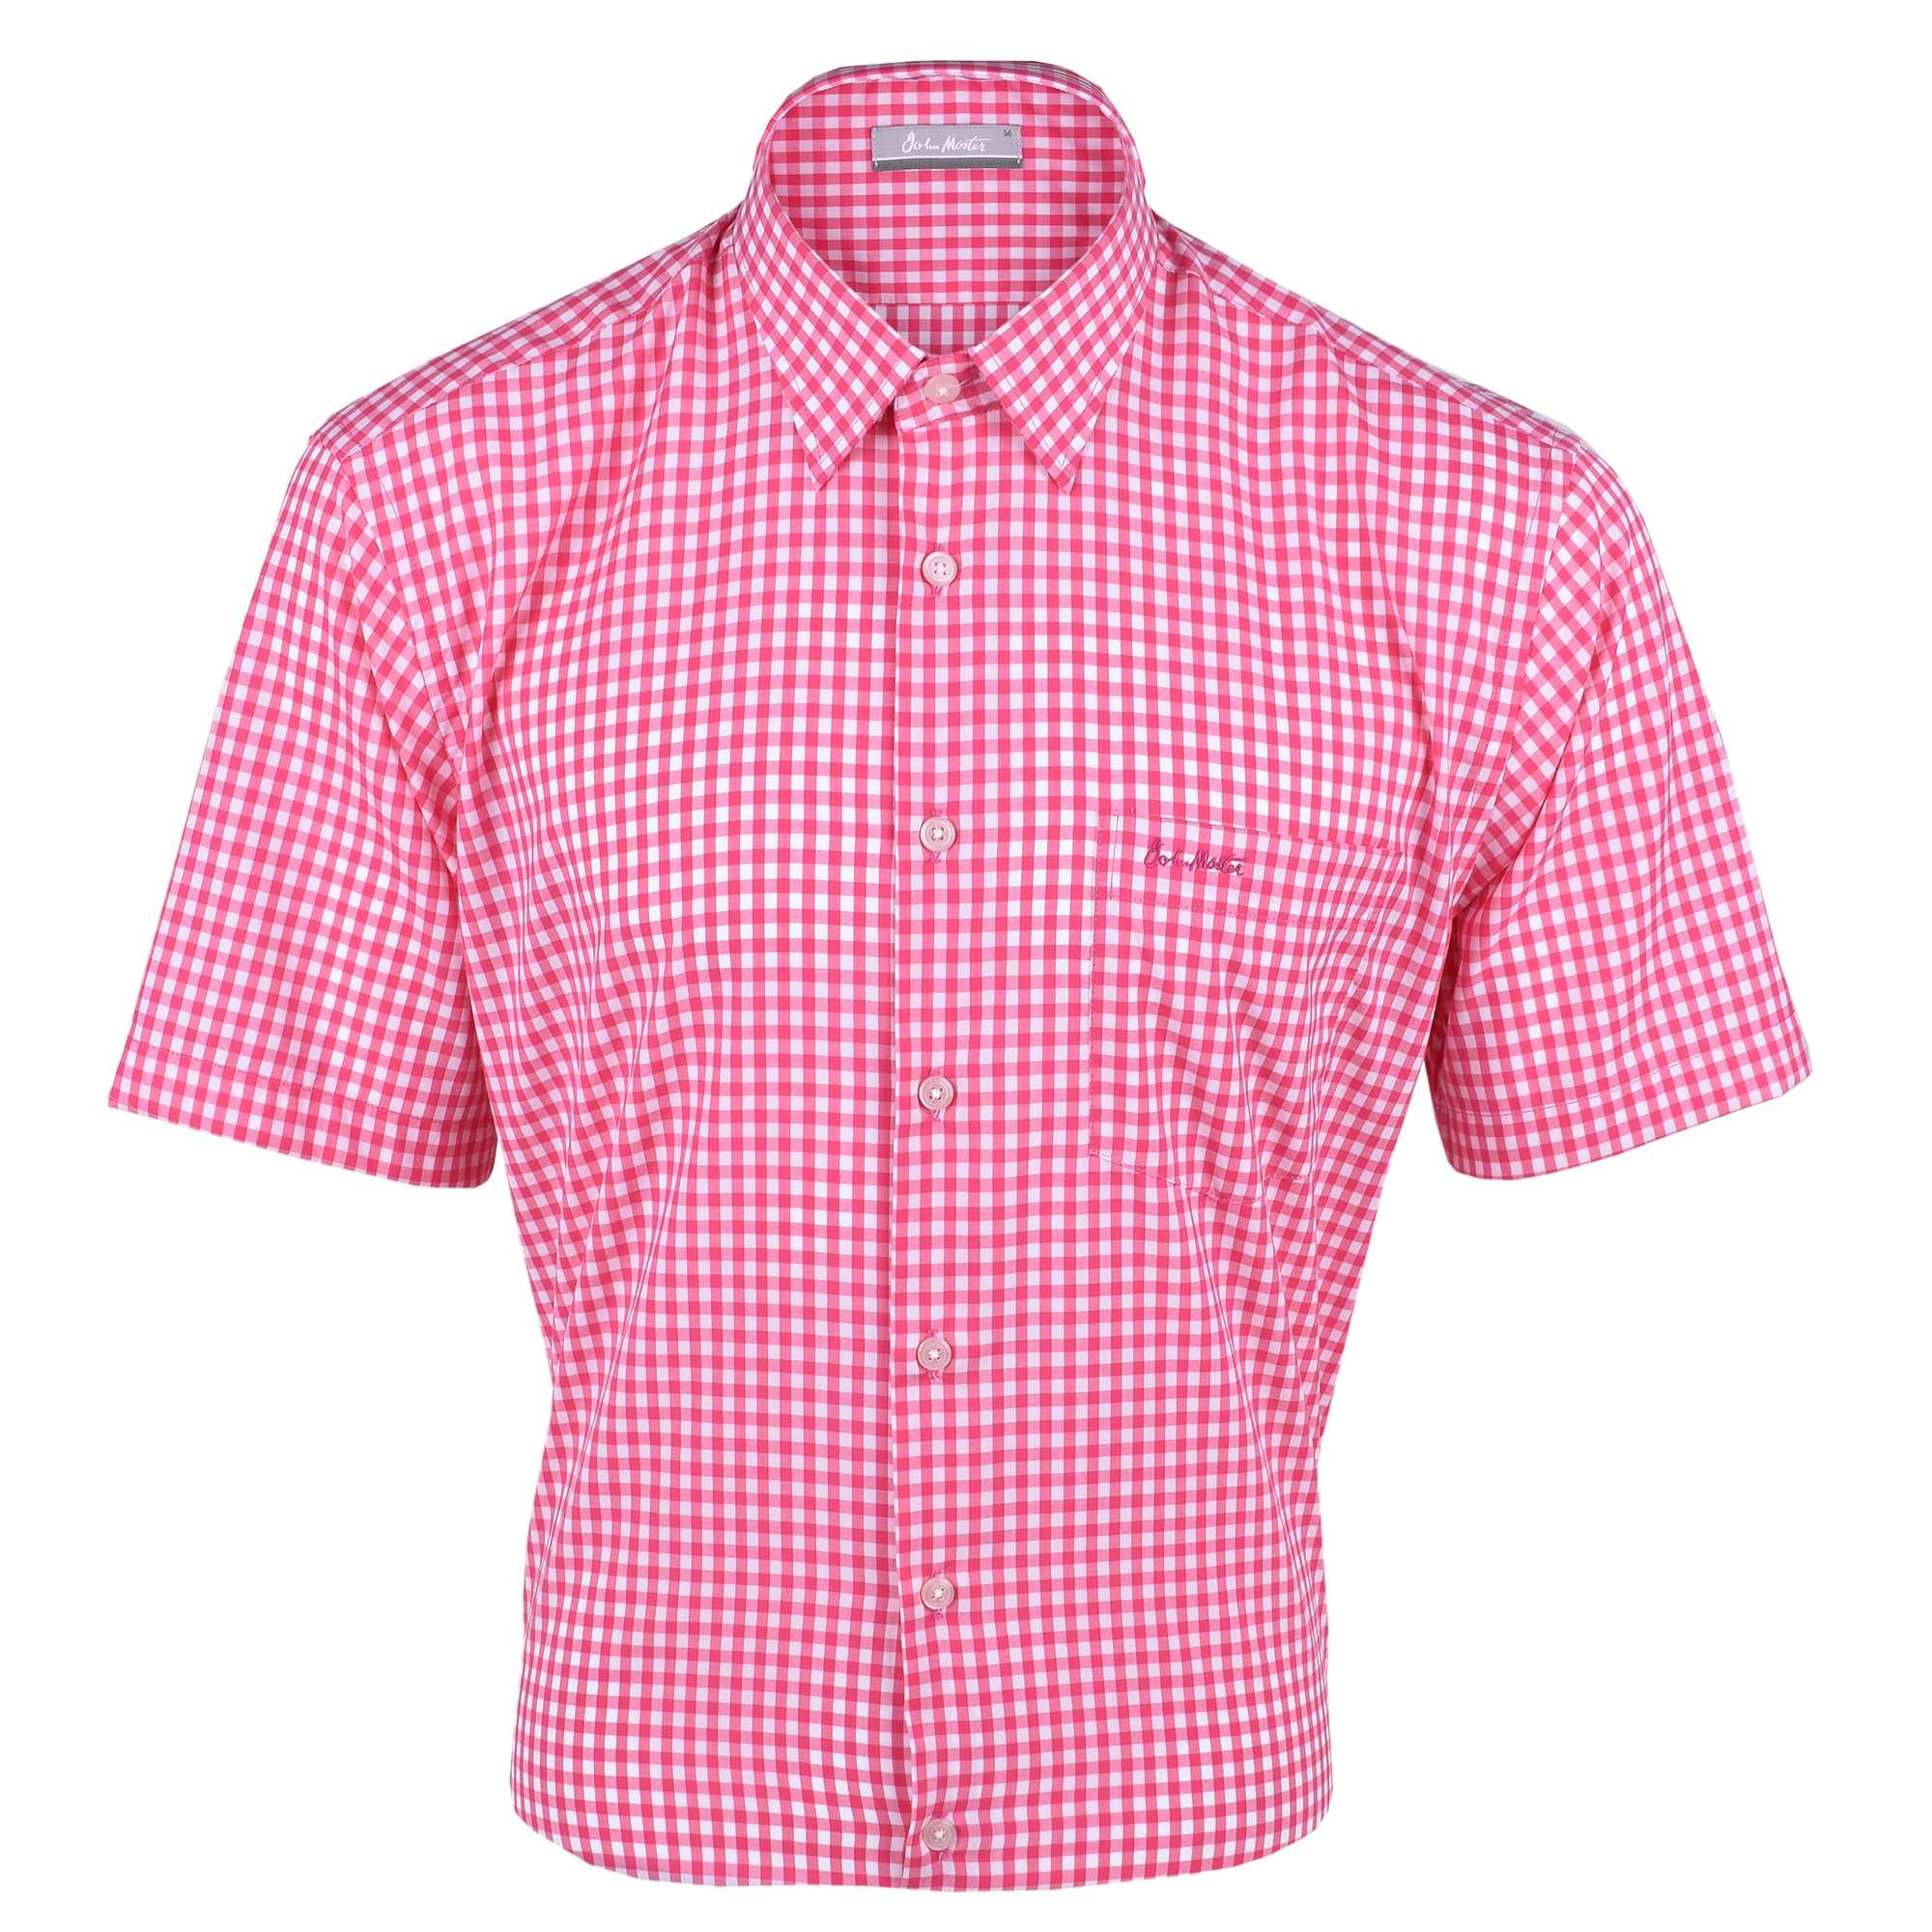 John Master Men Casual Regular Fit Shirt Red 7147022-R5 : Buy John Master online at CMG.MY